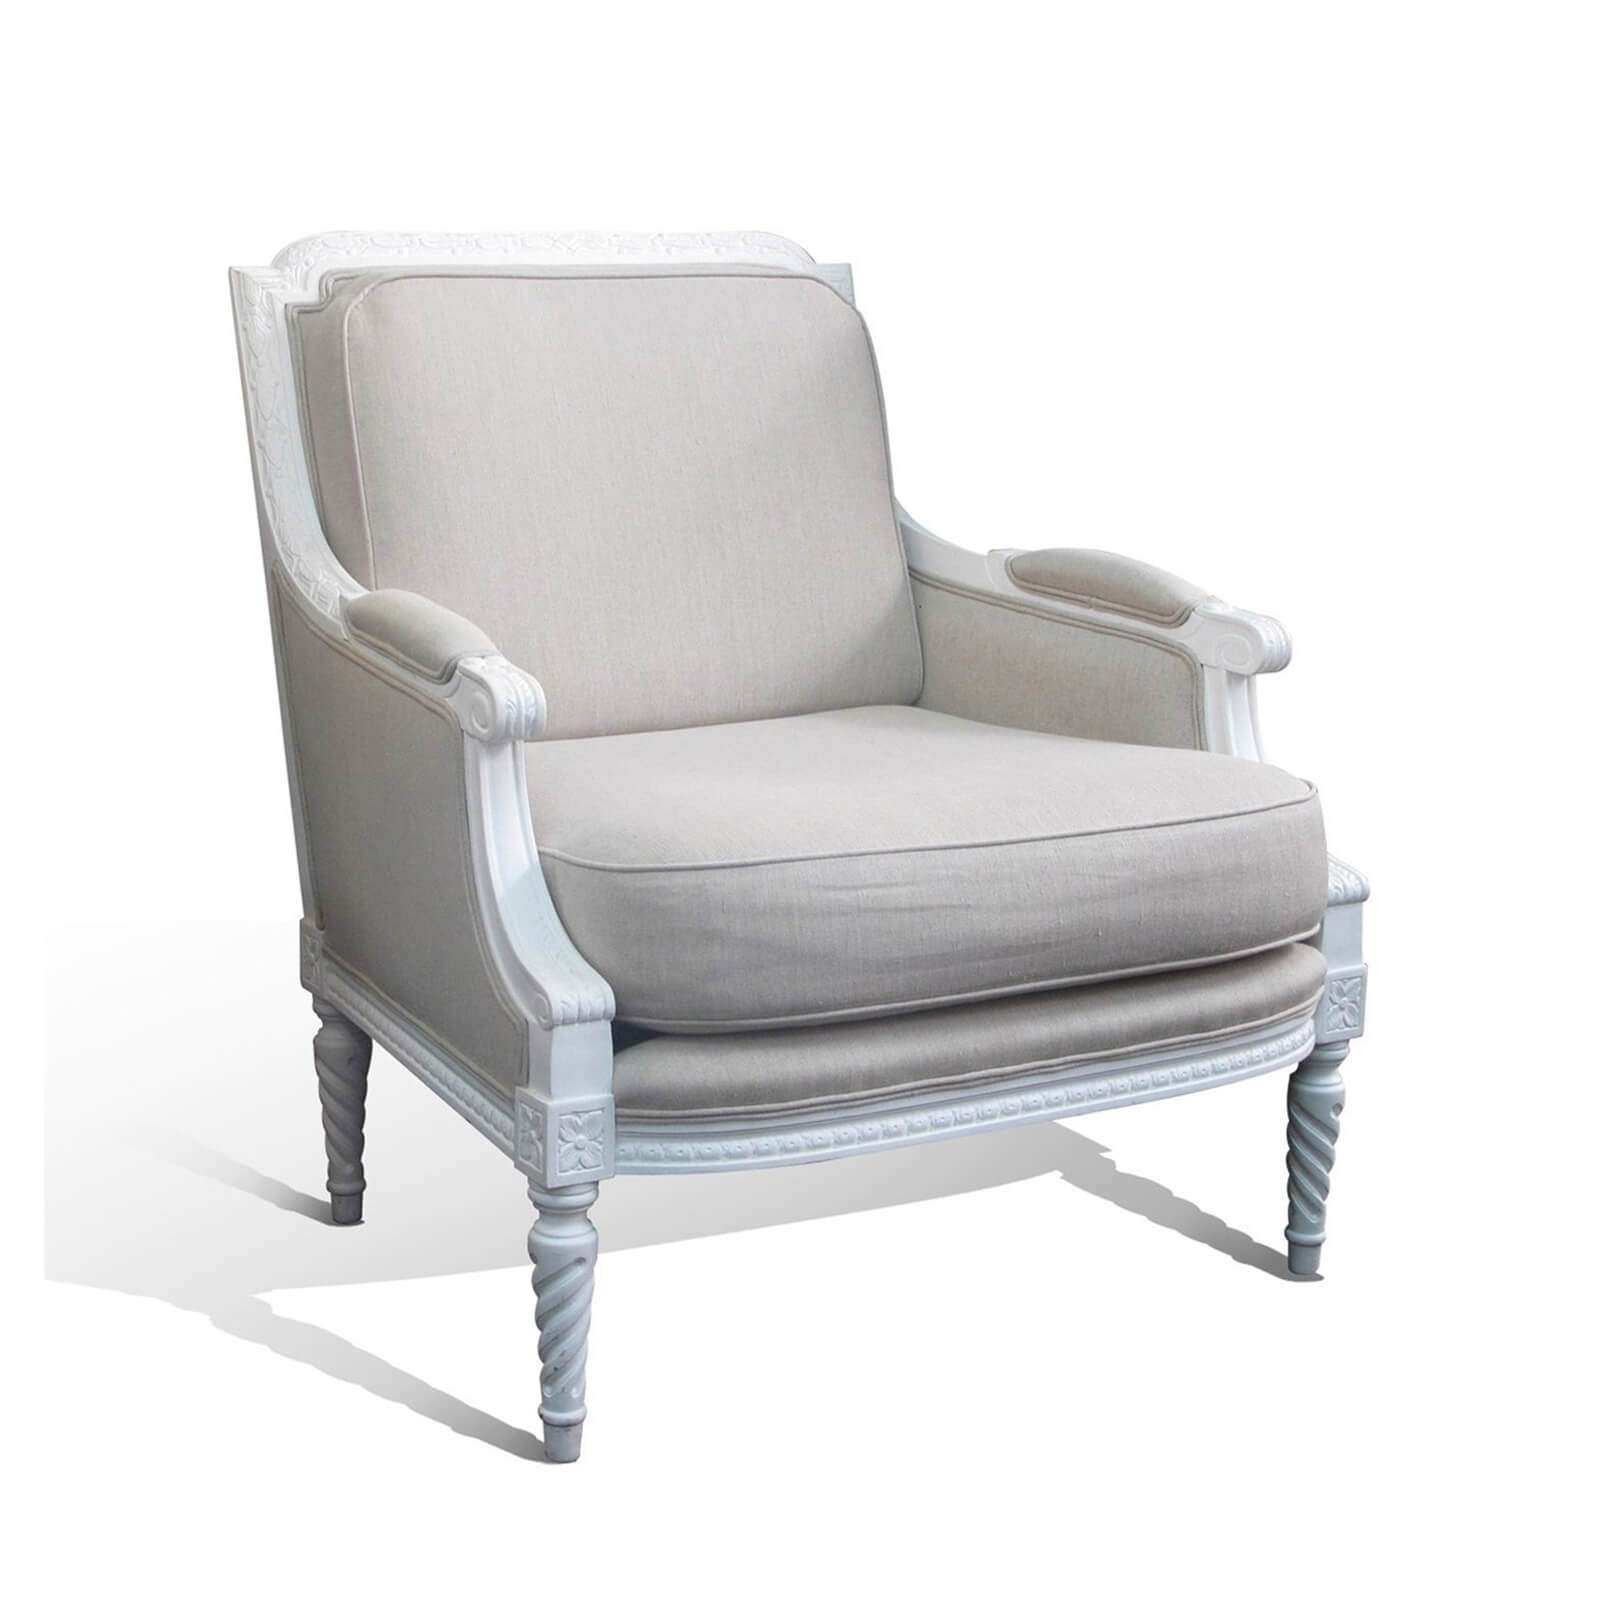 RIVIERA CLUB CHAIR 1 - STUART MEMBERY HOME COLLECTION